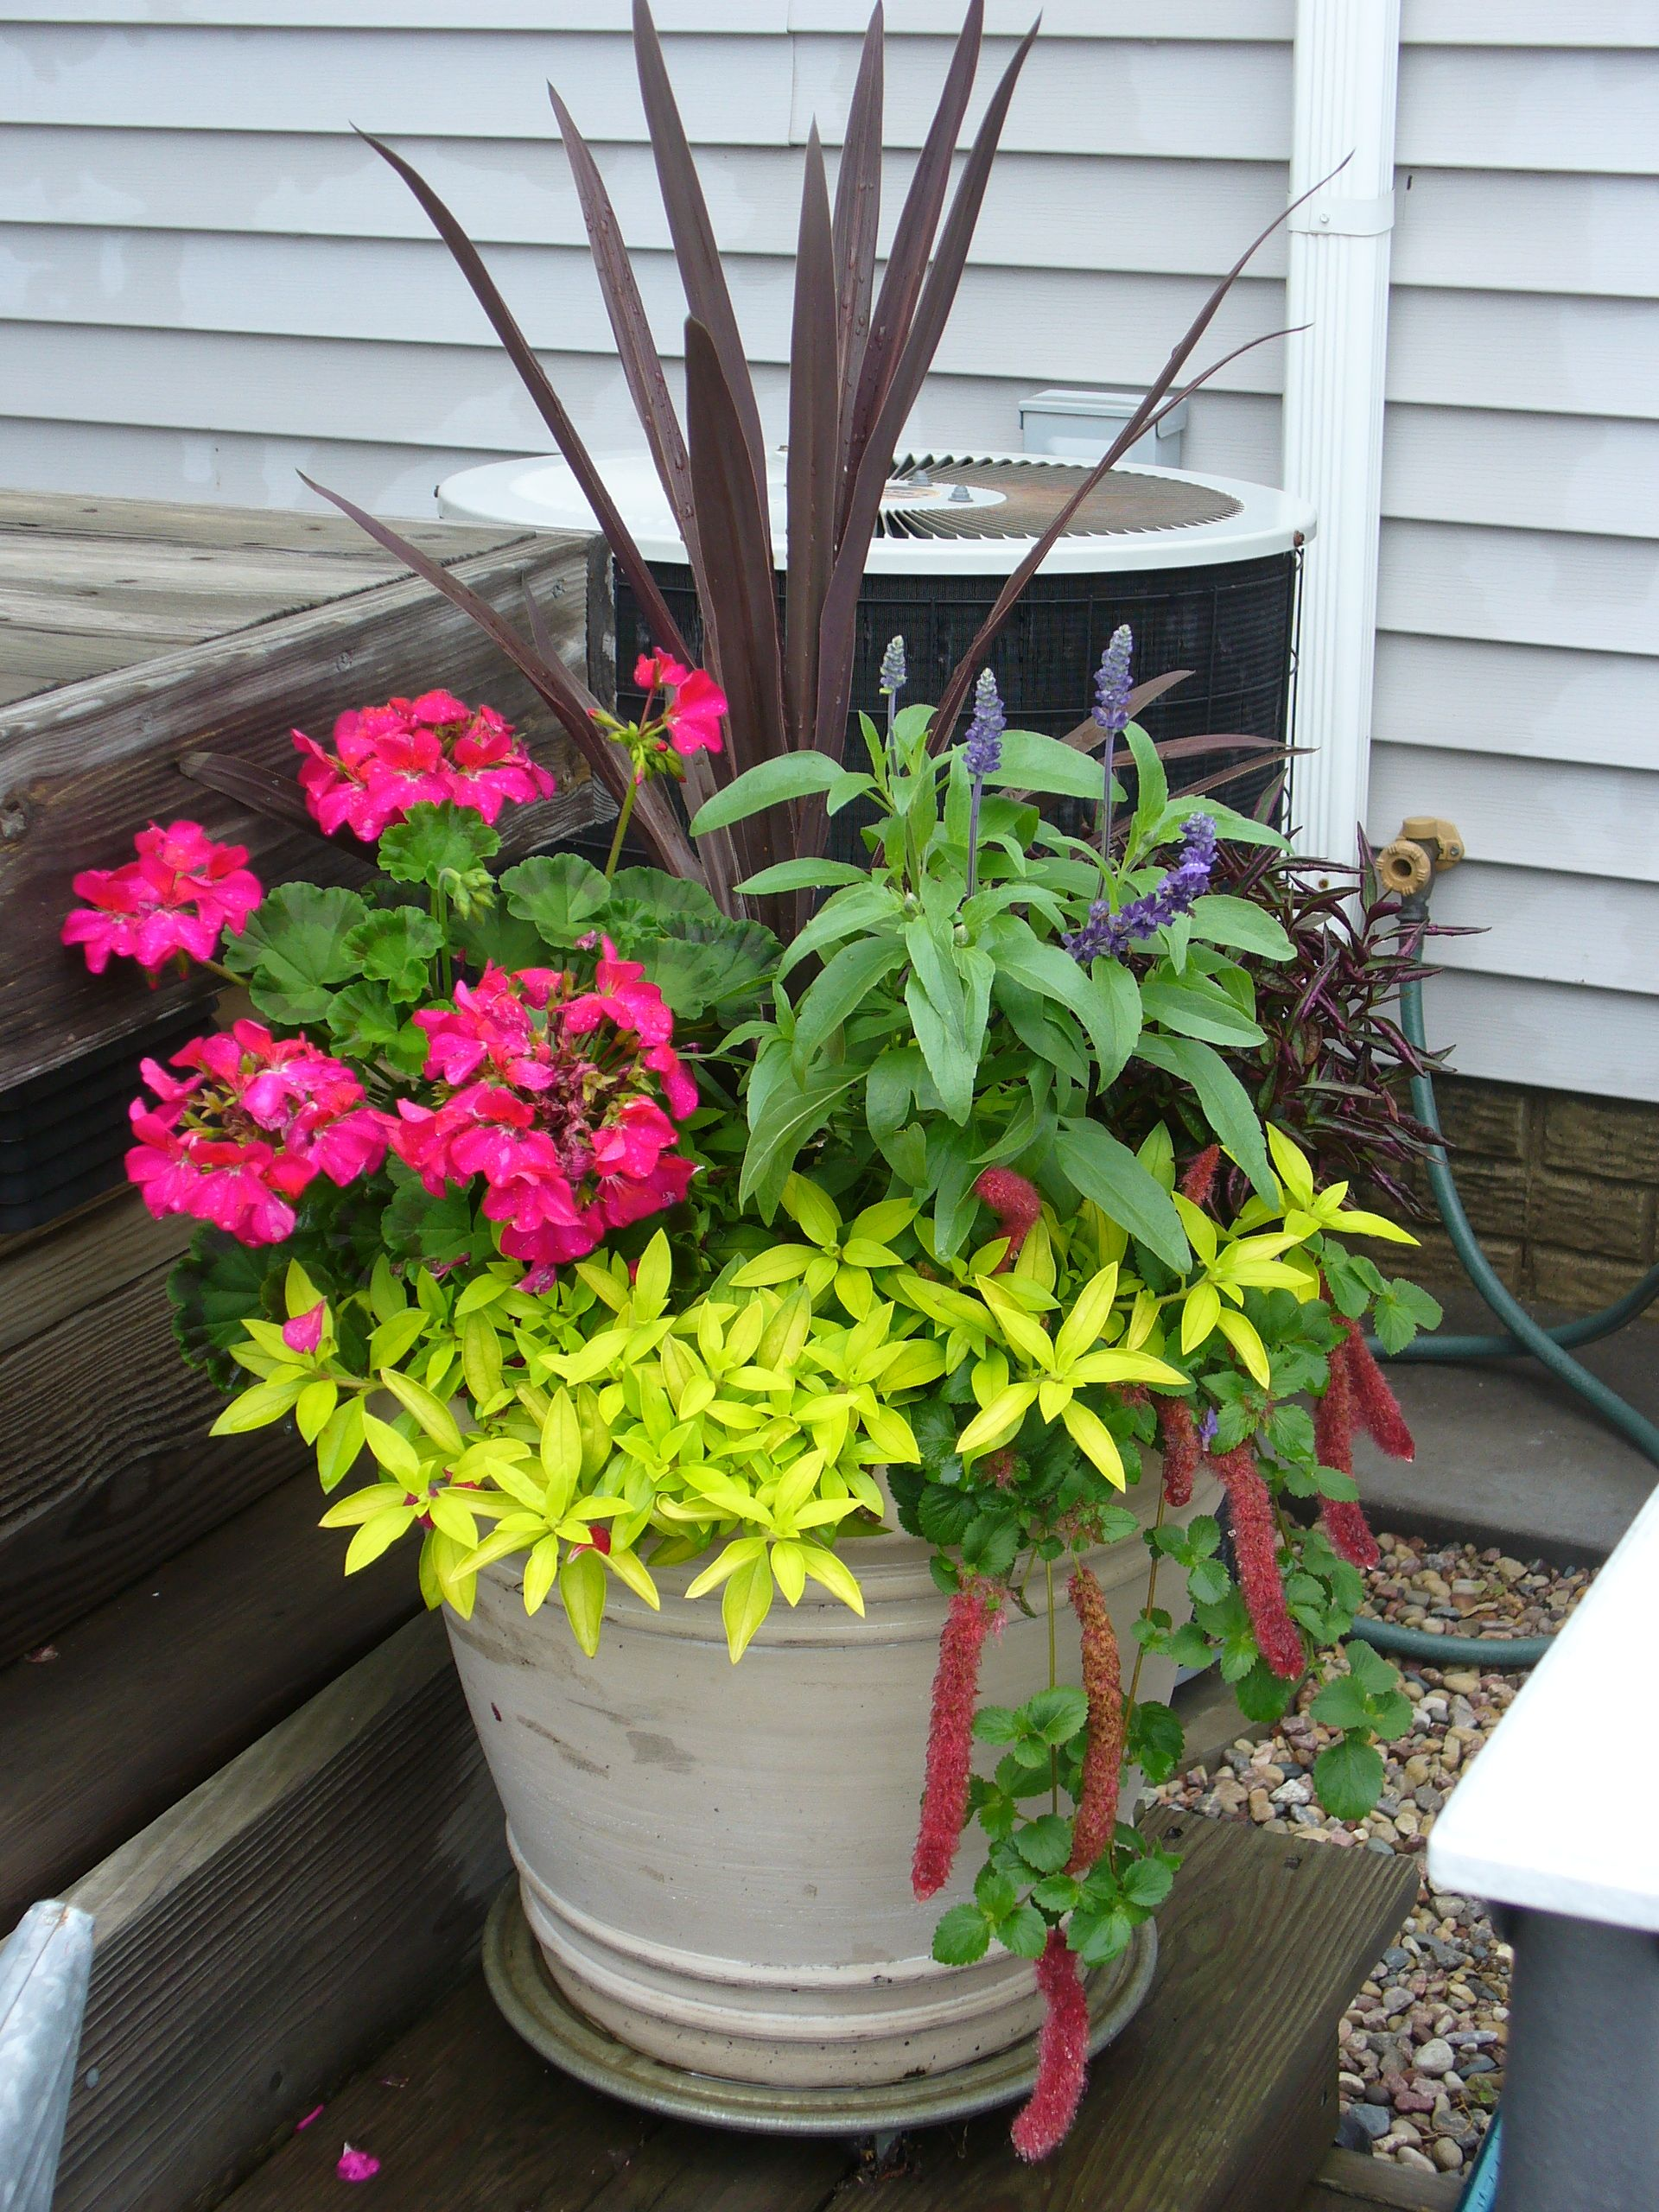 Flowers on the deck Plants on deck, Garden containers